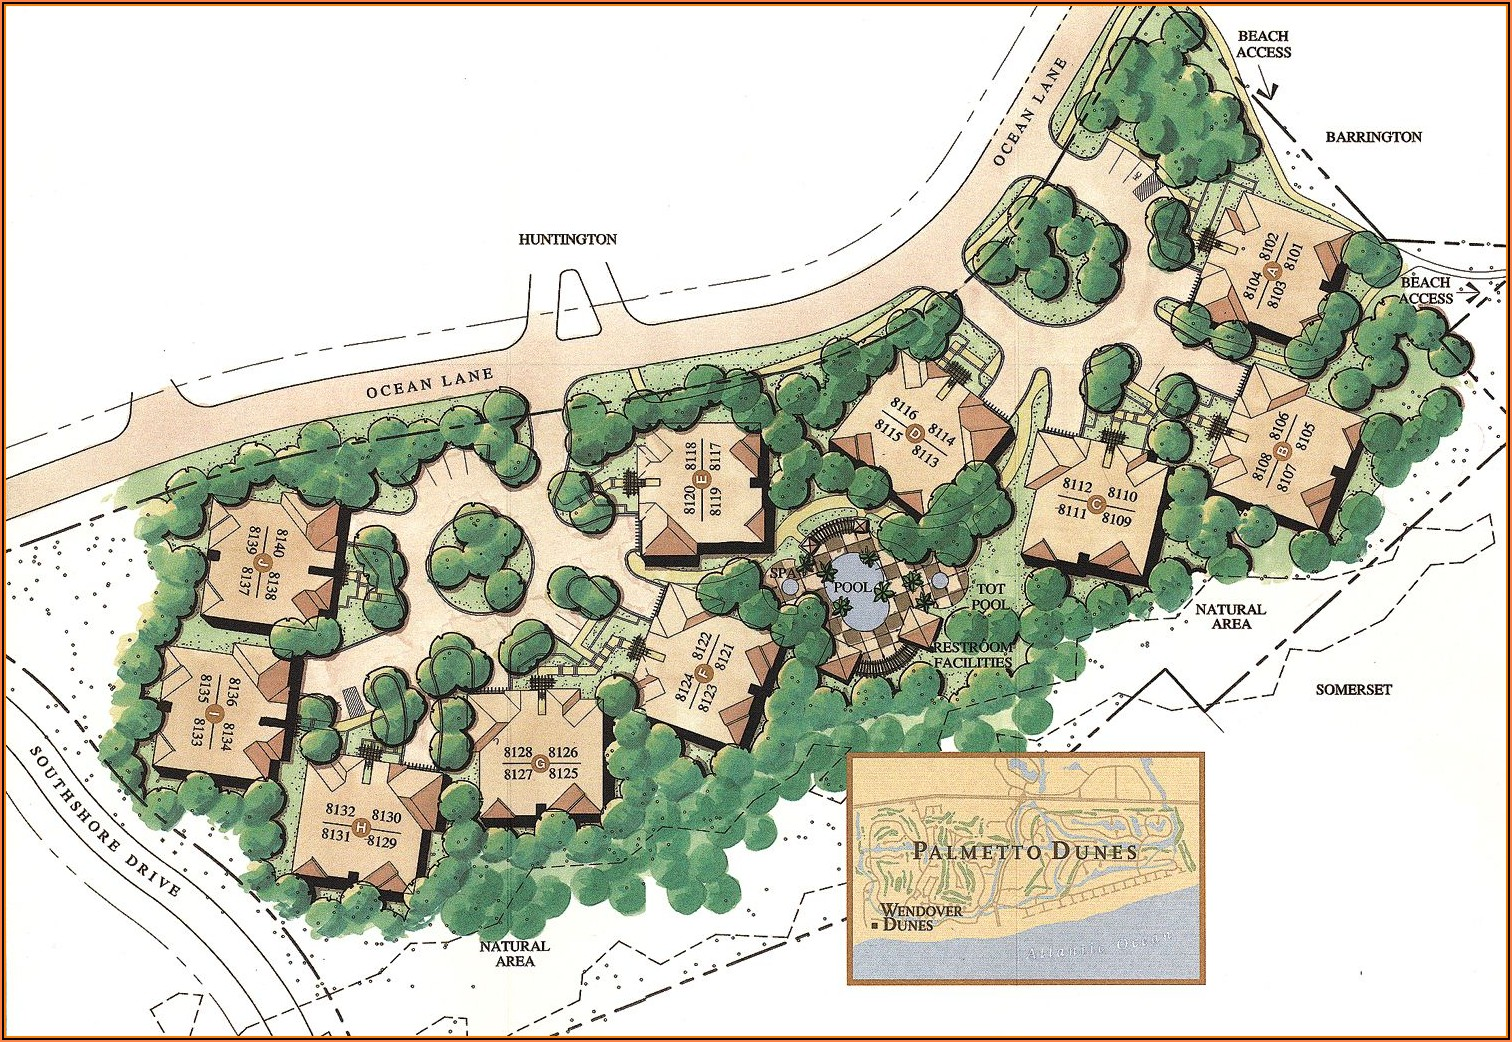 The Moorings Palmetto Dunes Map